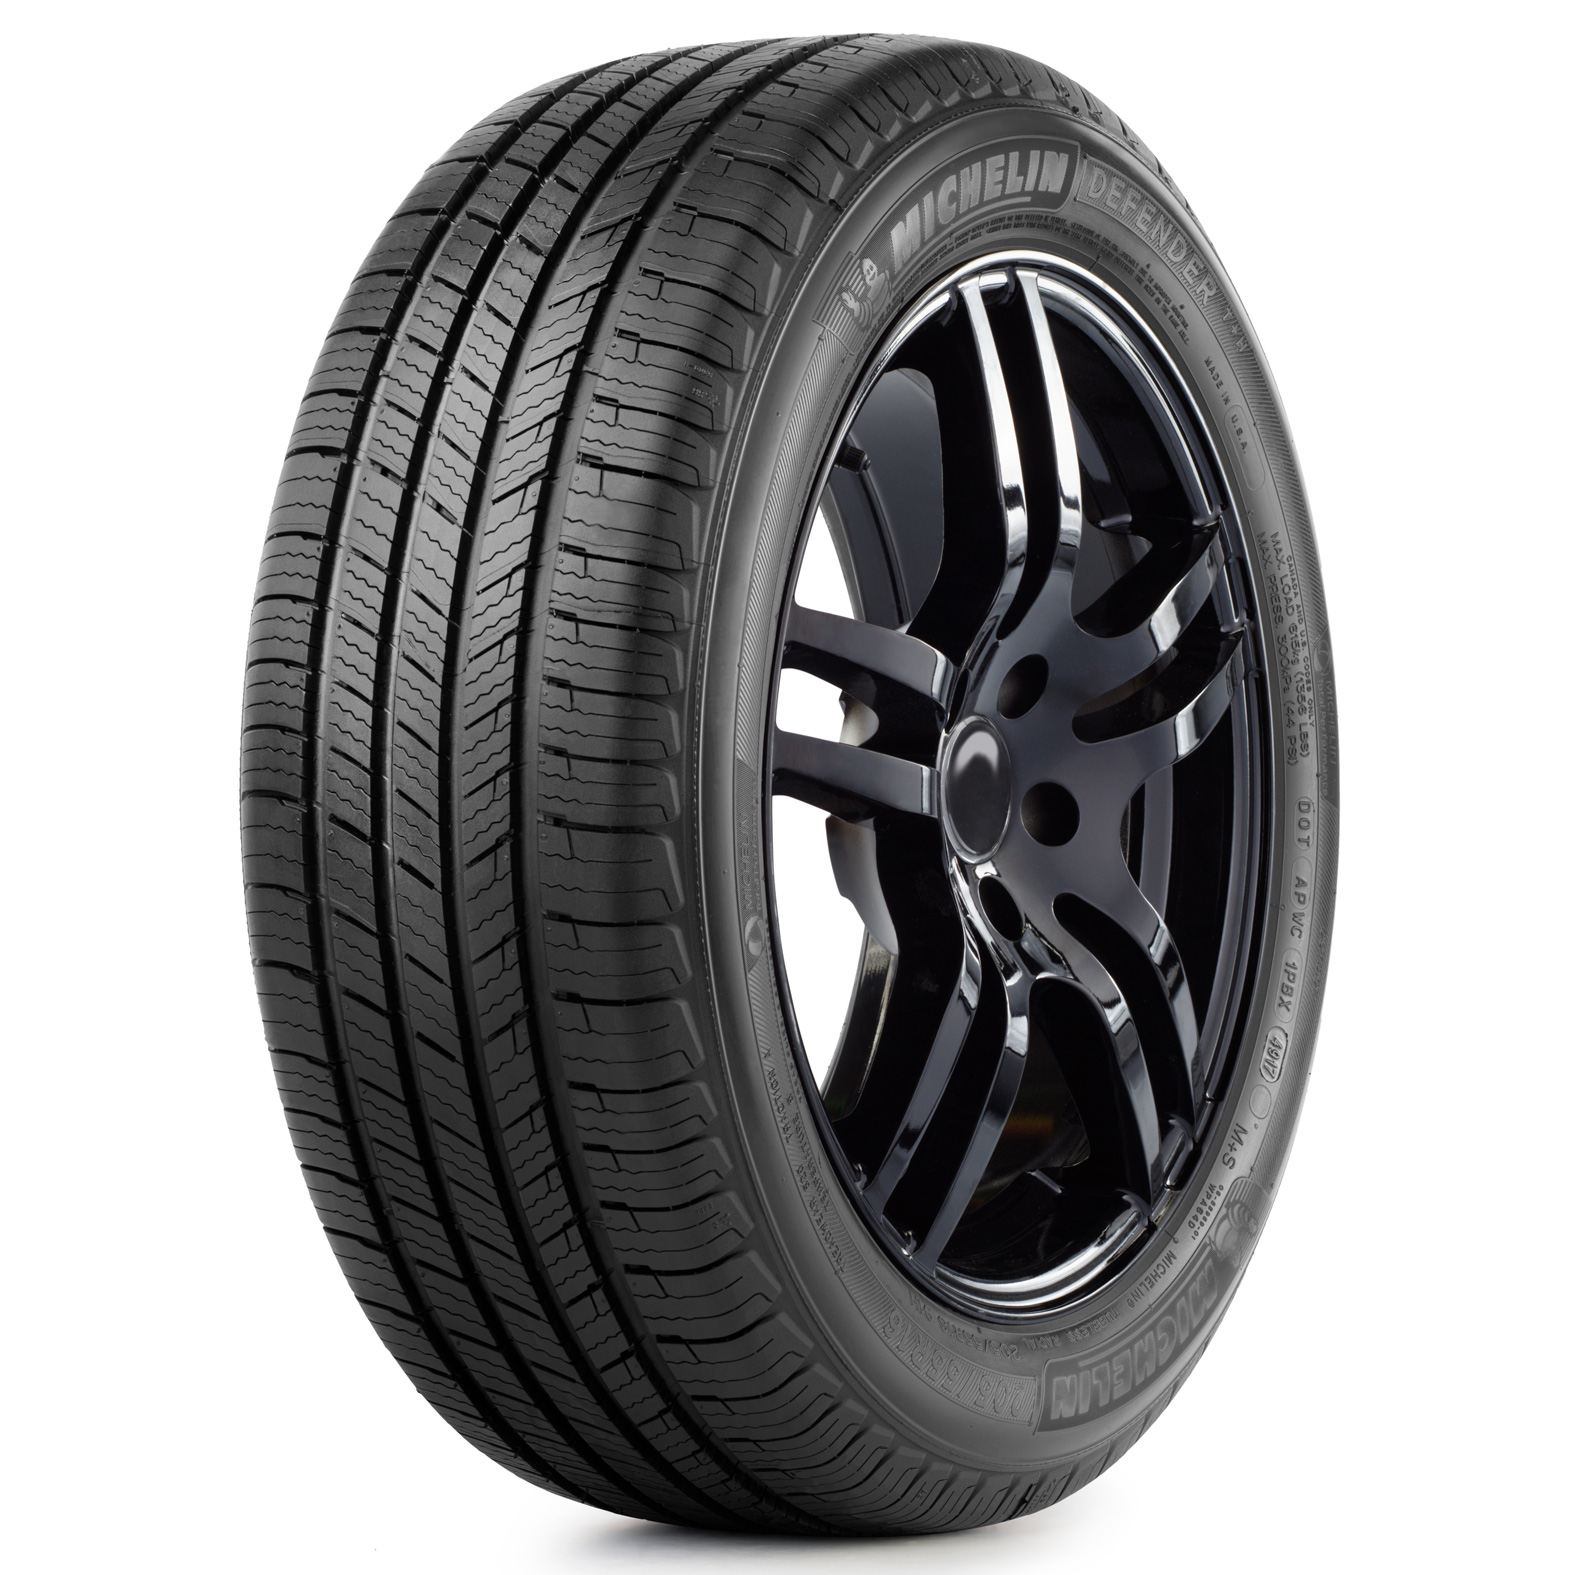 Michelin DEFENDER T+H tire - angle